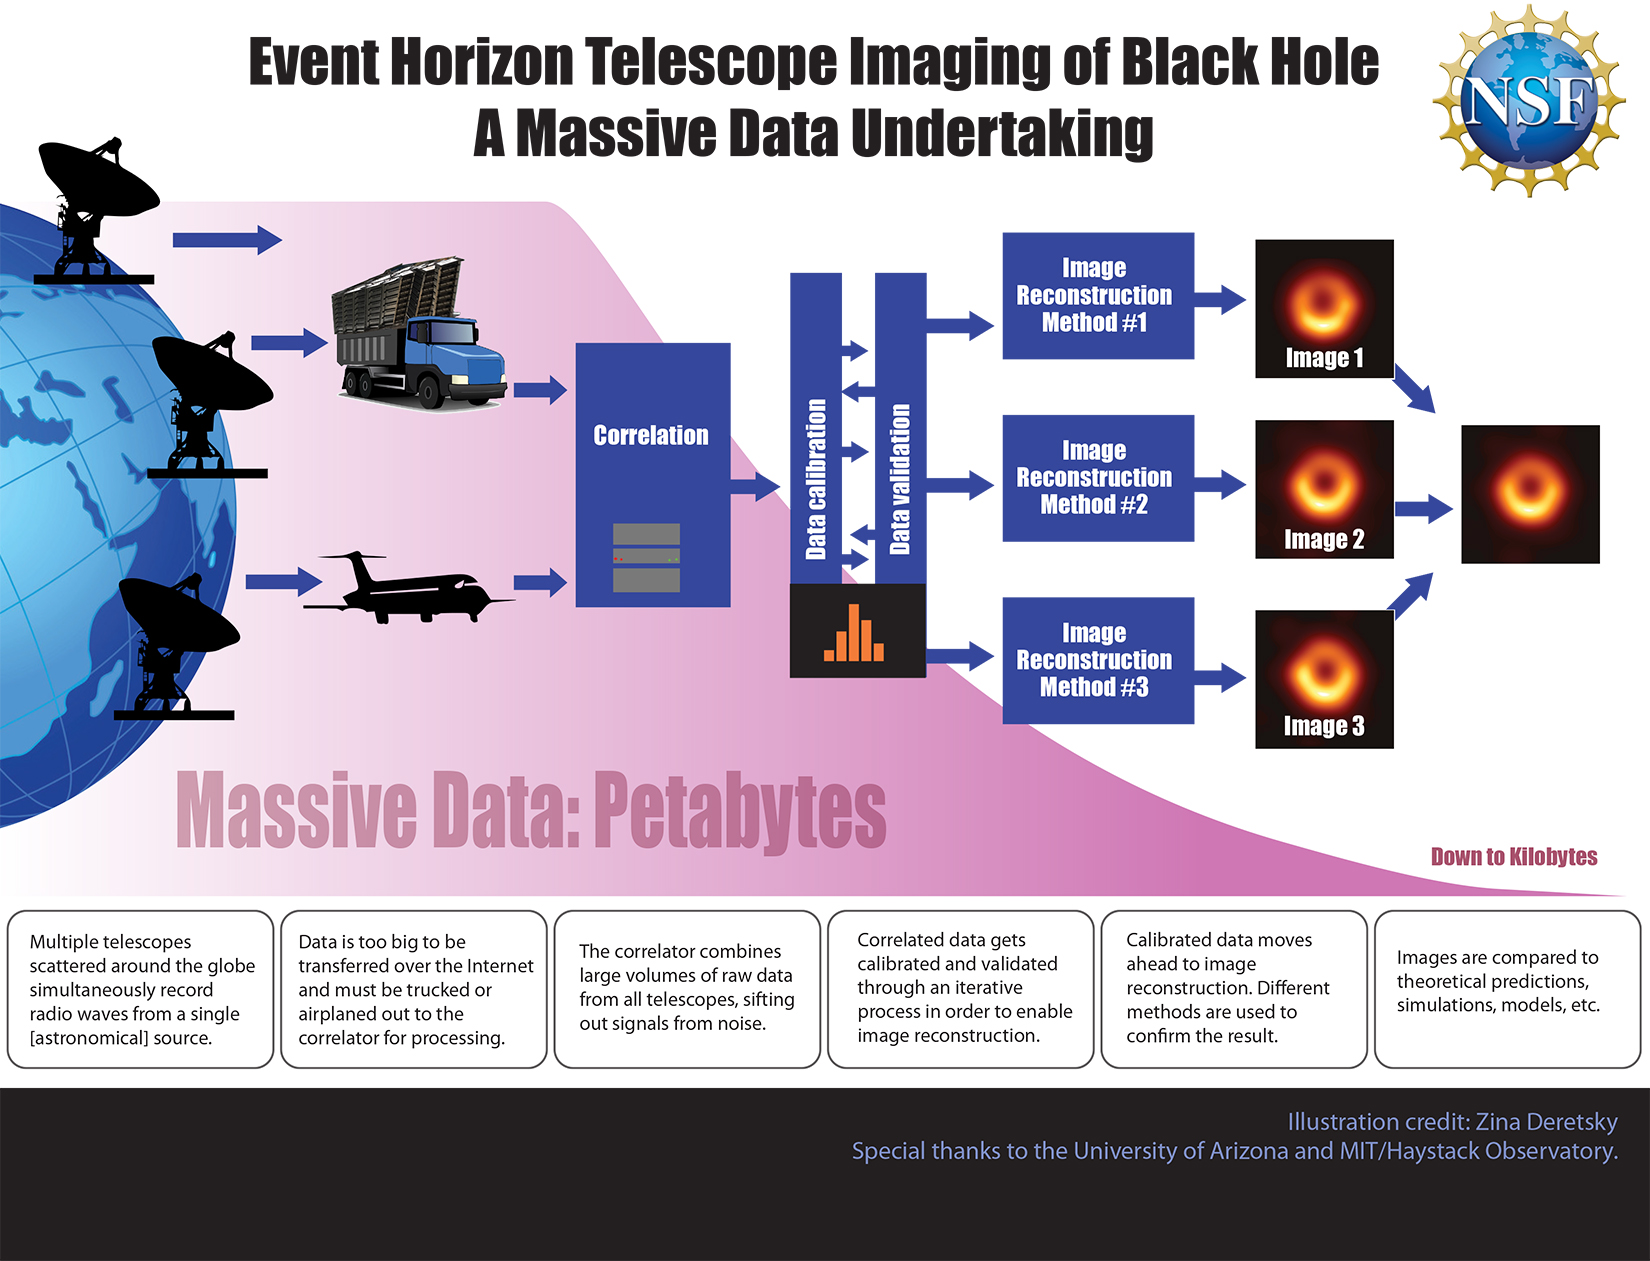 resolving the image of M87* from petabytes of information was a Big Data challenge